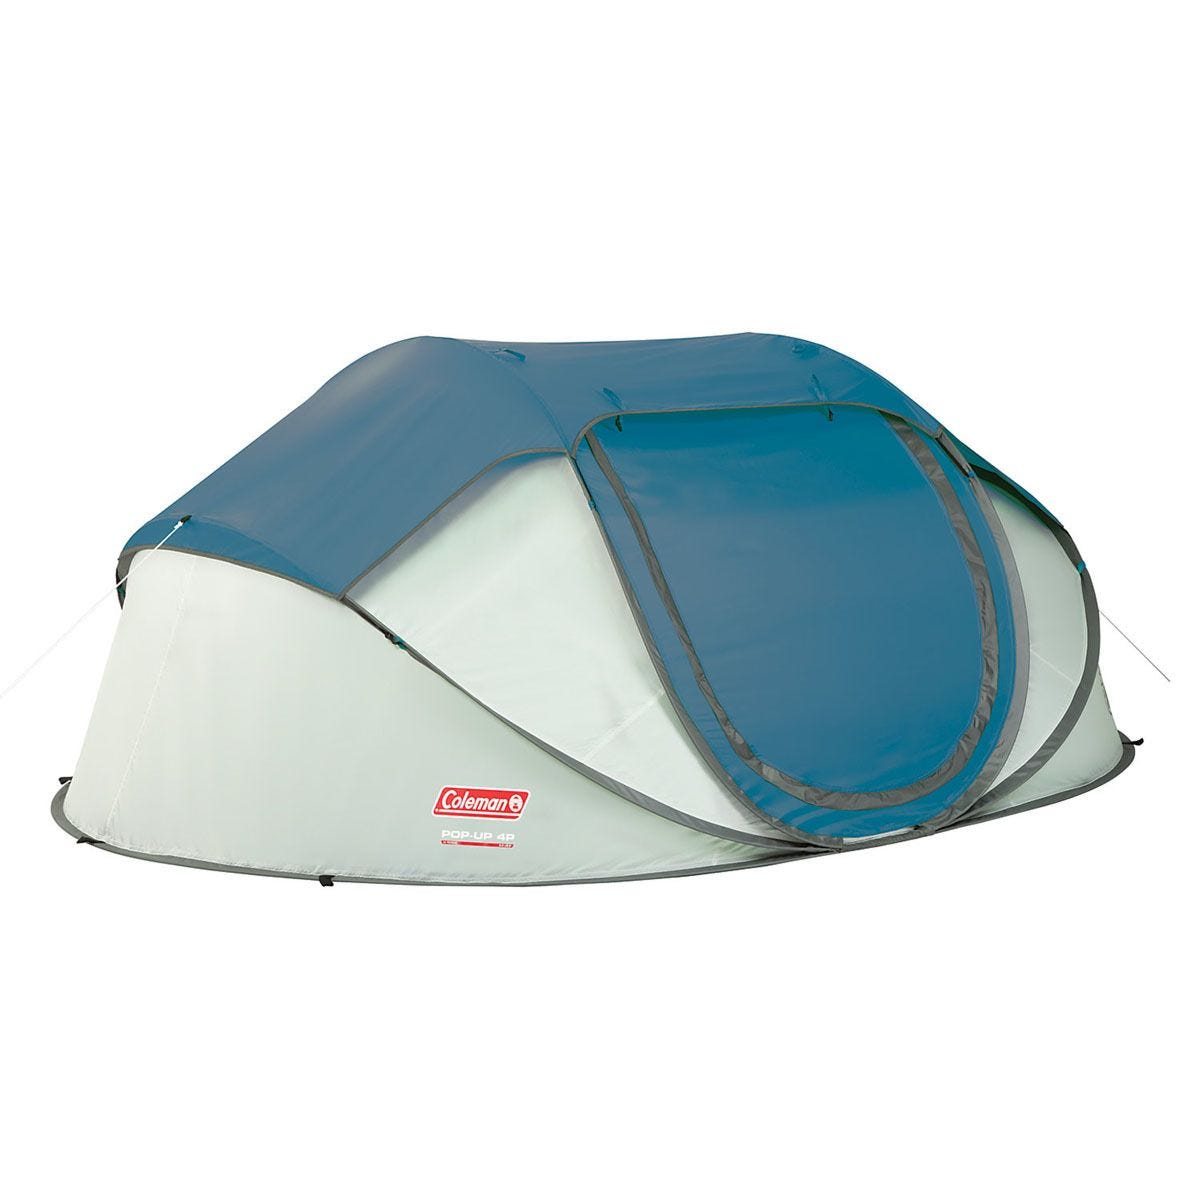 Coleman FastPitch Galiano 4 Person Pop Up Tent - Blue & Grey